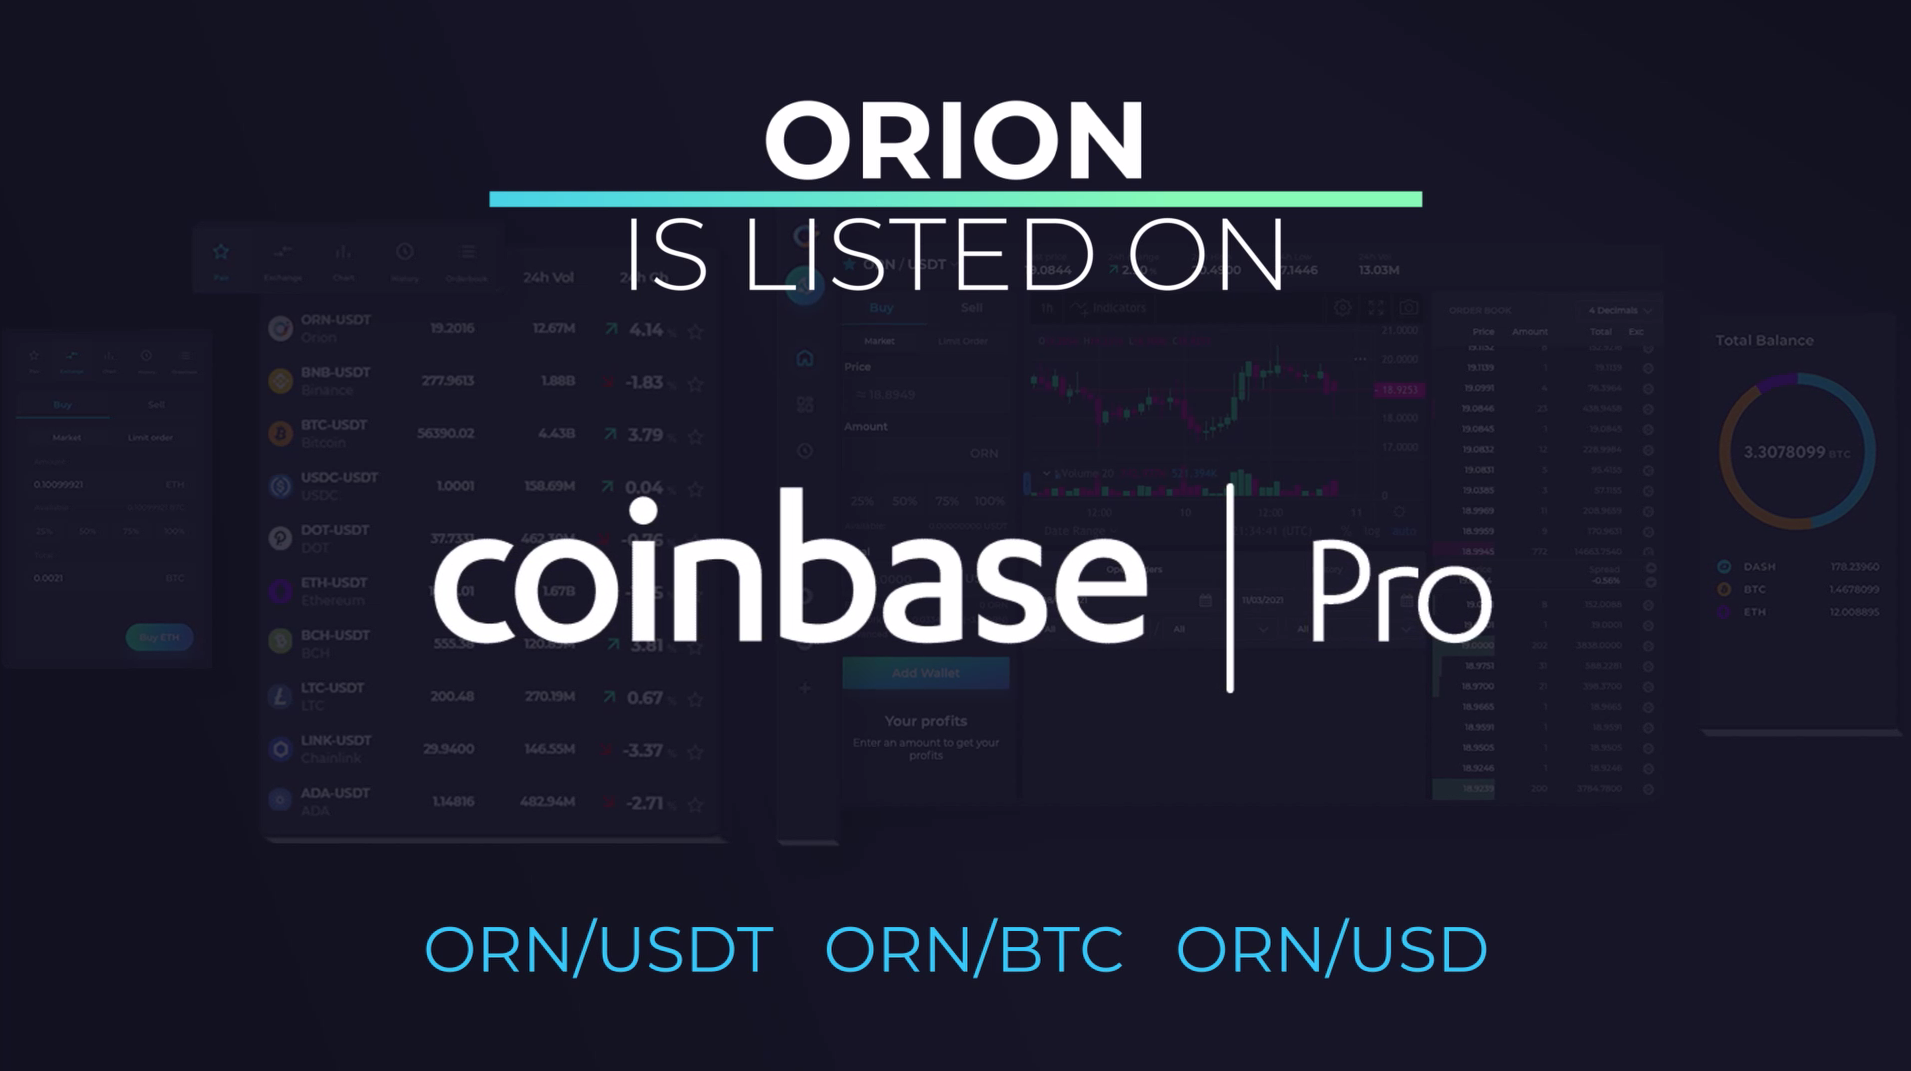 ORN is listed on Coinbase Pro